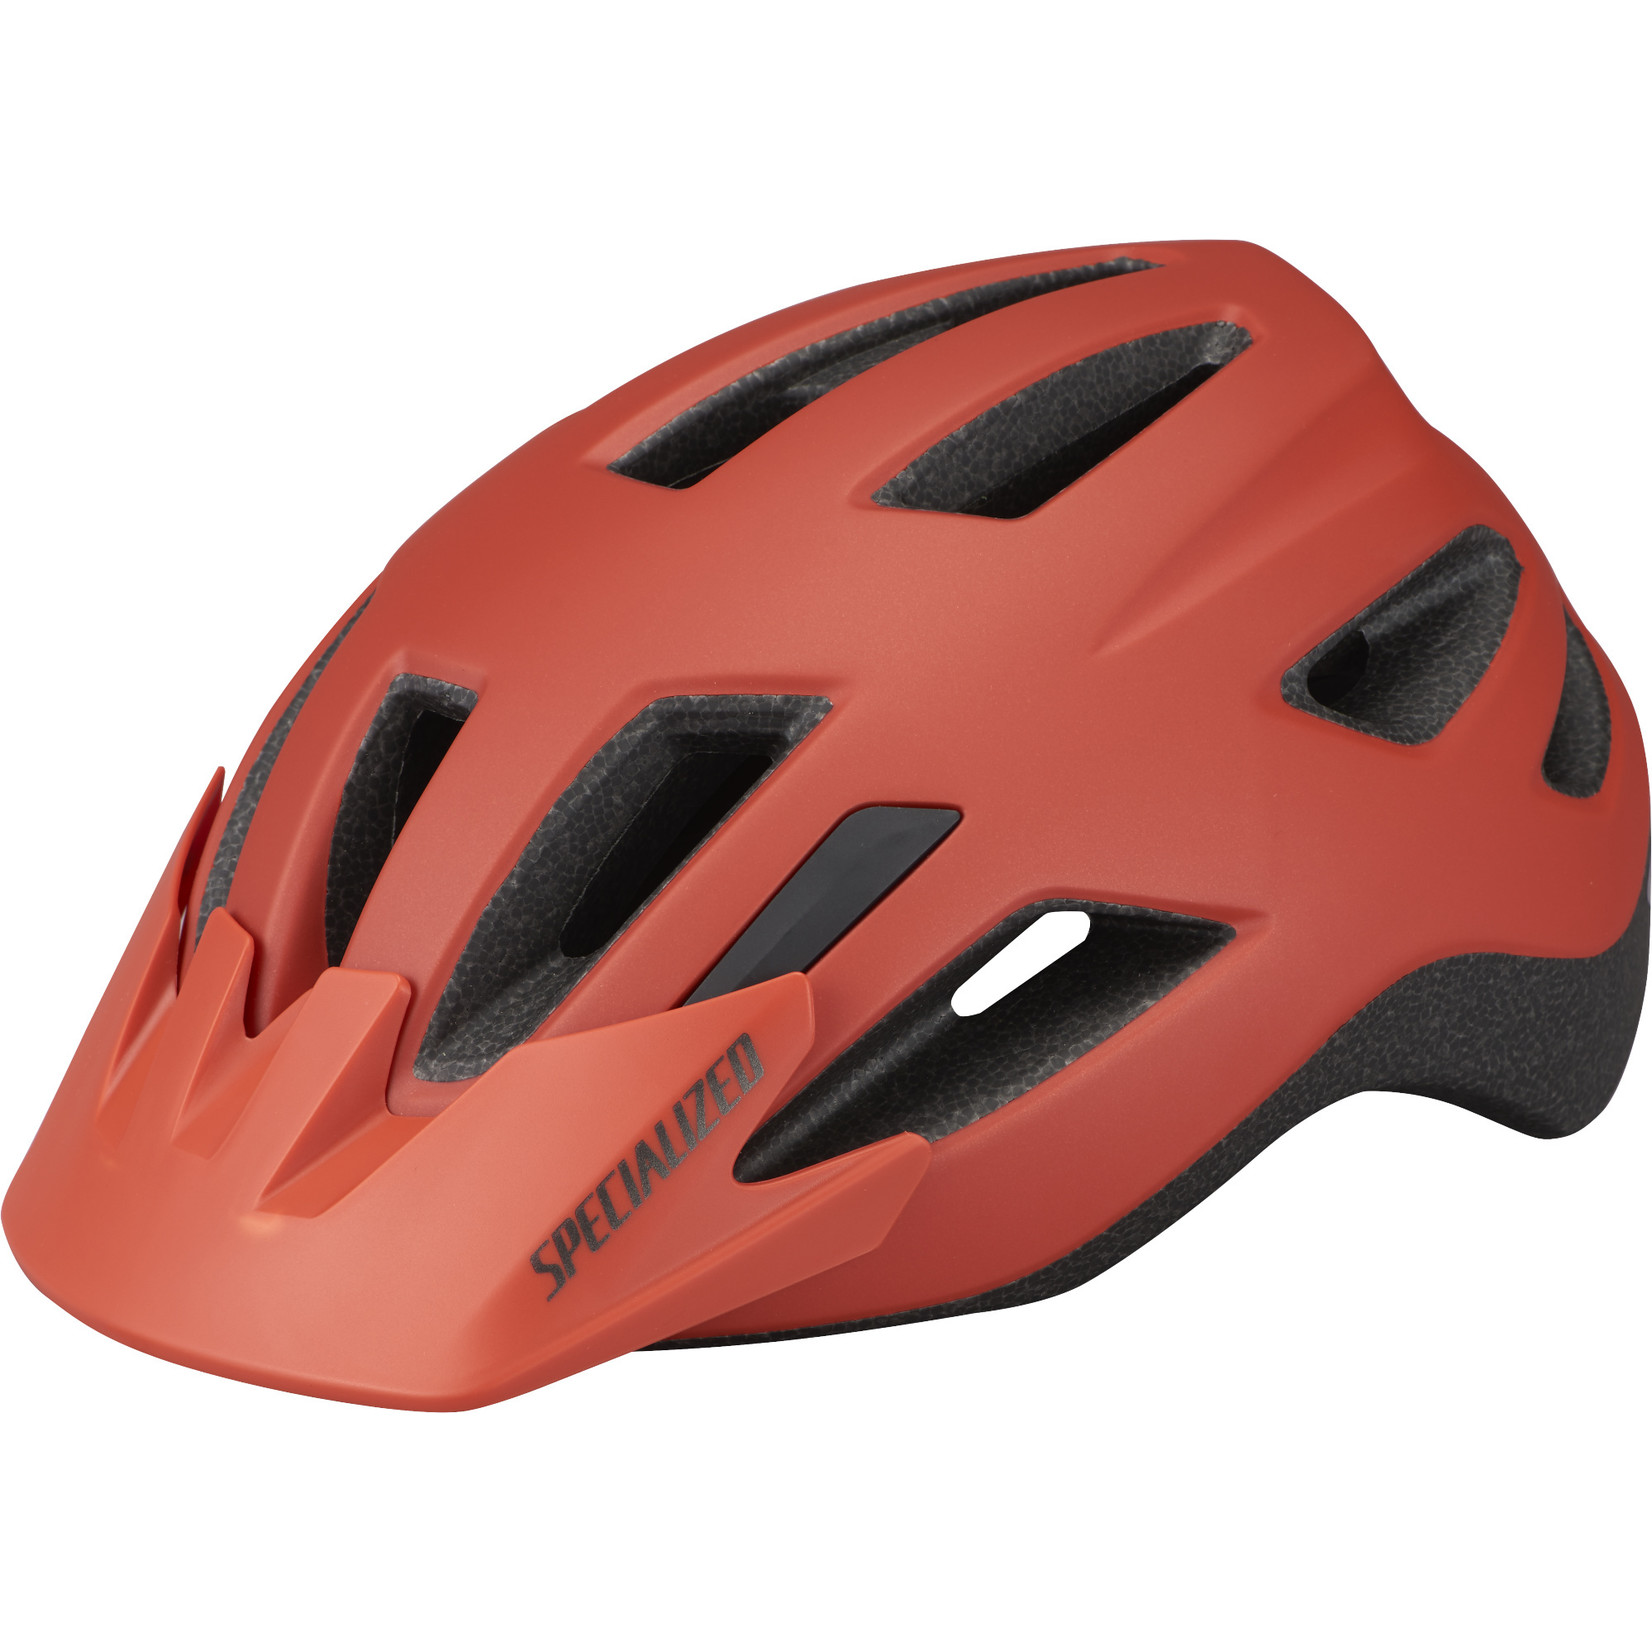 Specialized Specialized Shuffle SB Helmet, Red, Youth